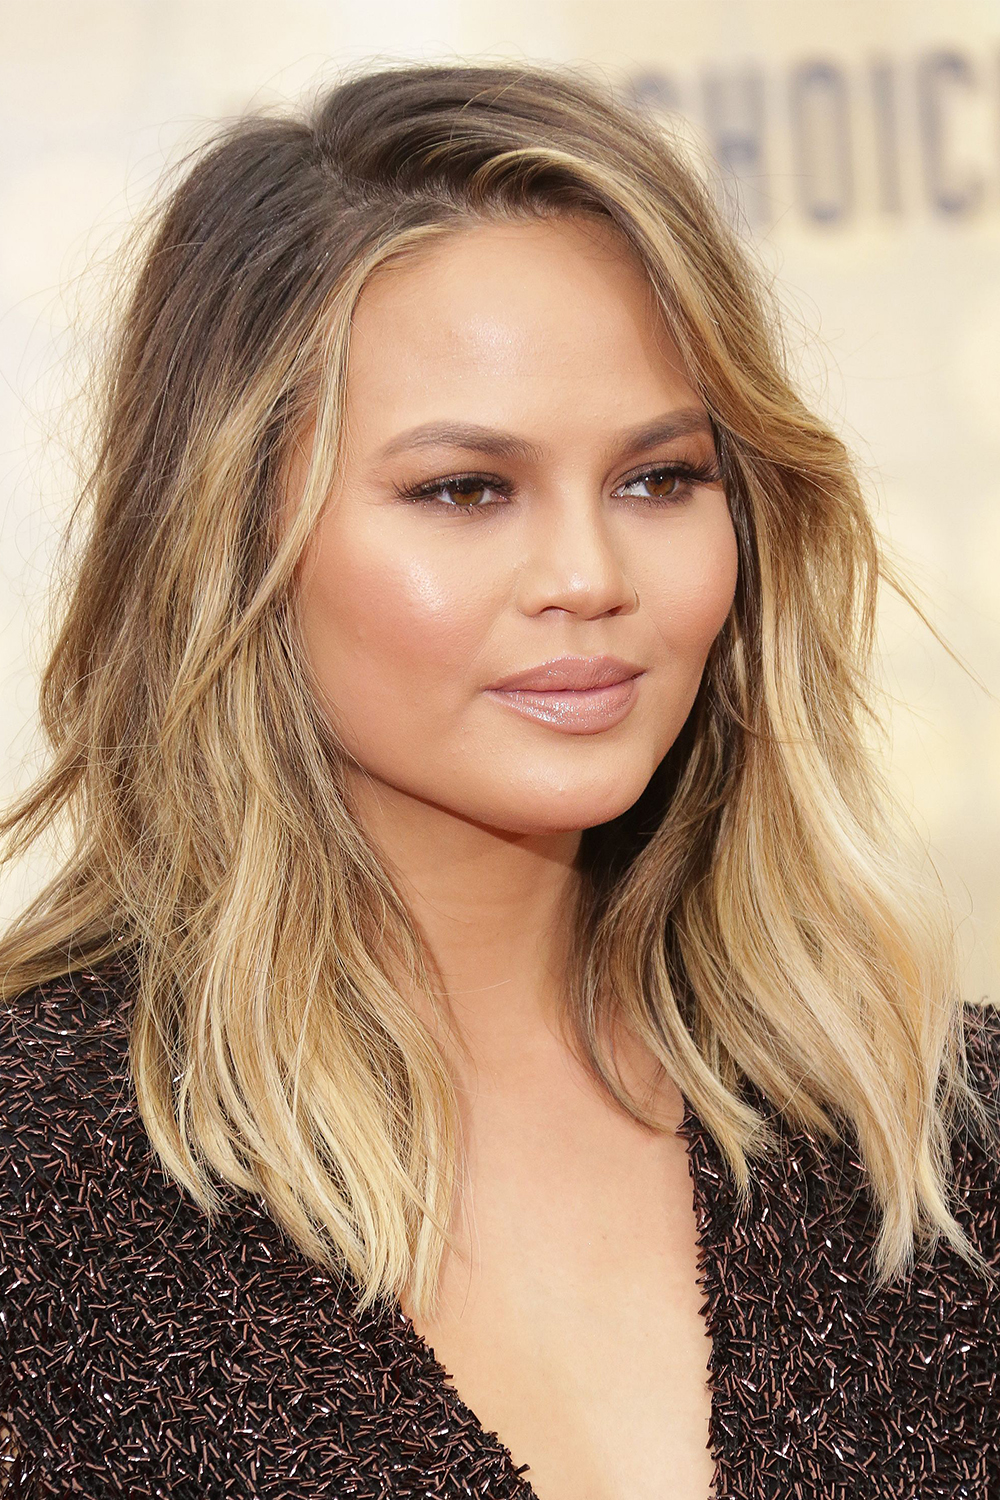 So What Exactly Is Balayage And Why Do We Love It So Much